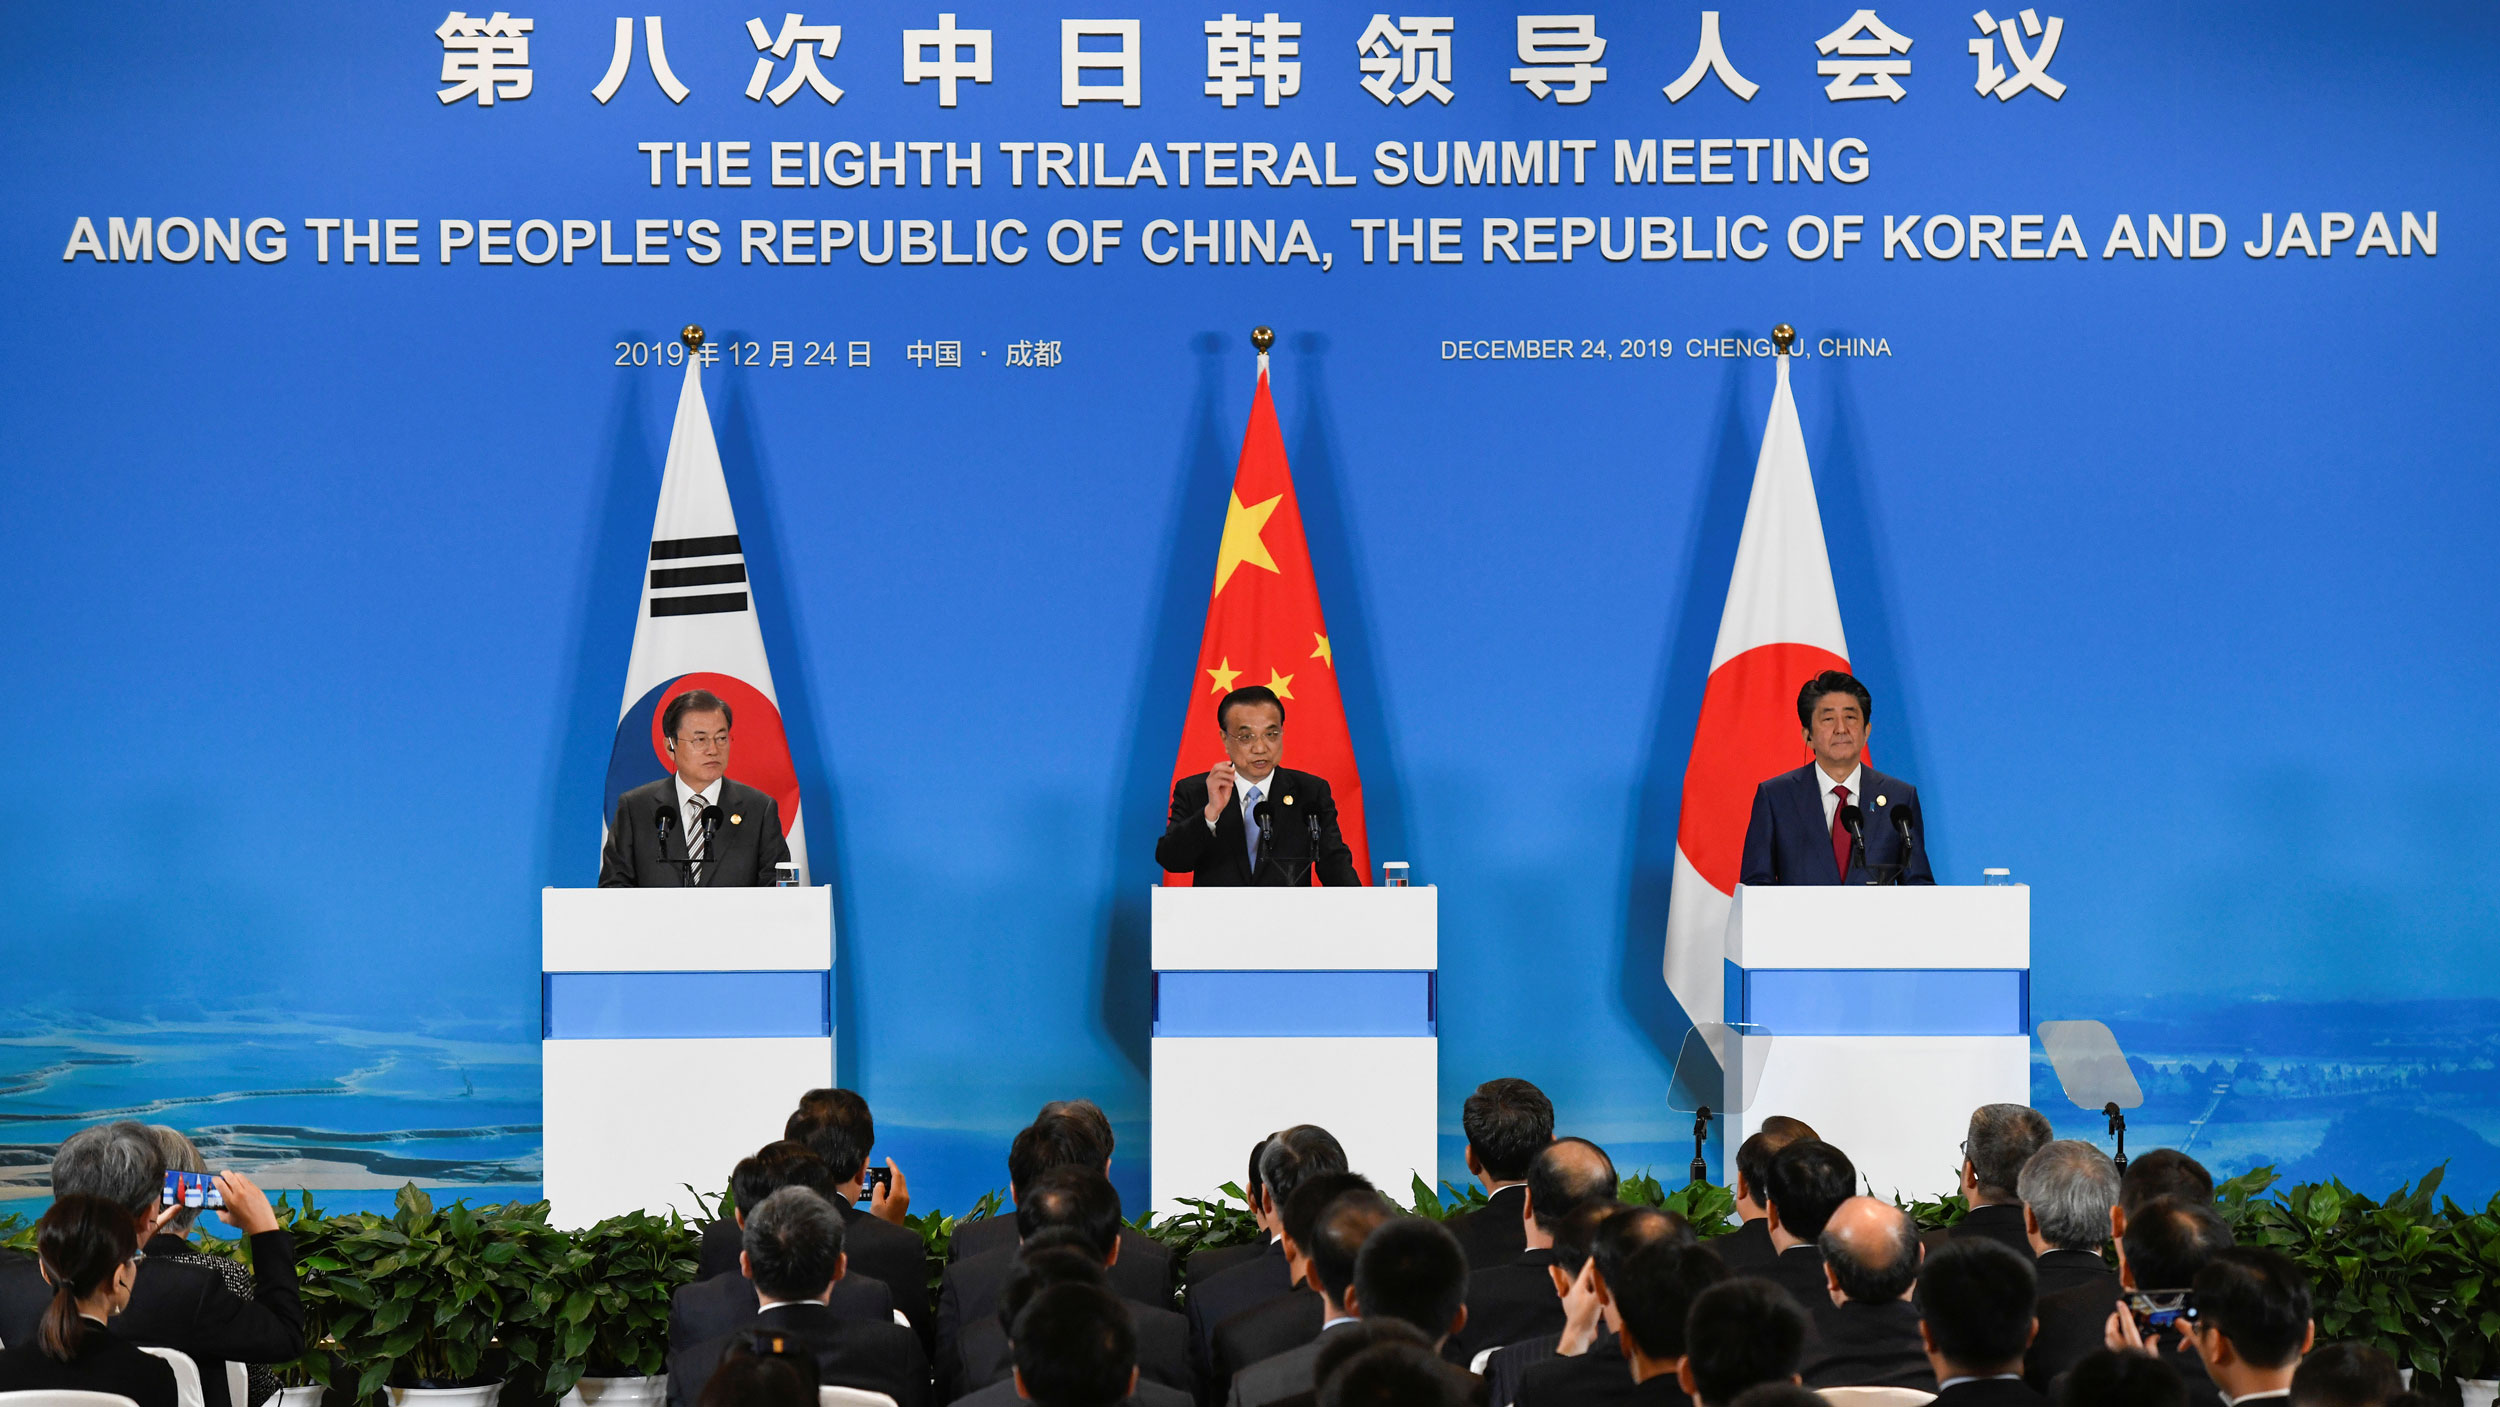 China's Premier Li Keqiang, Japan's Prime Minister Shinzo Abe and South Korea's President Moon Jae-in are shown standing behind three podiums with national flags.